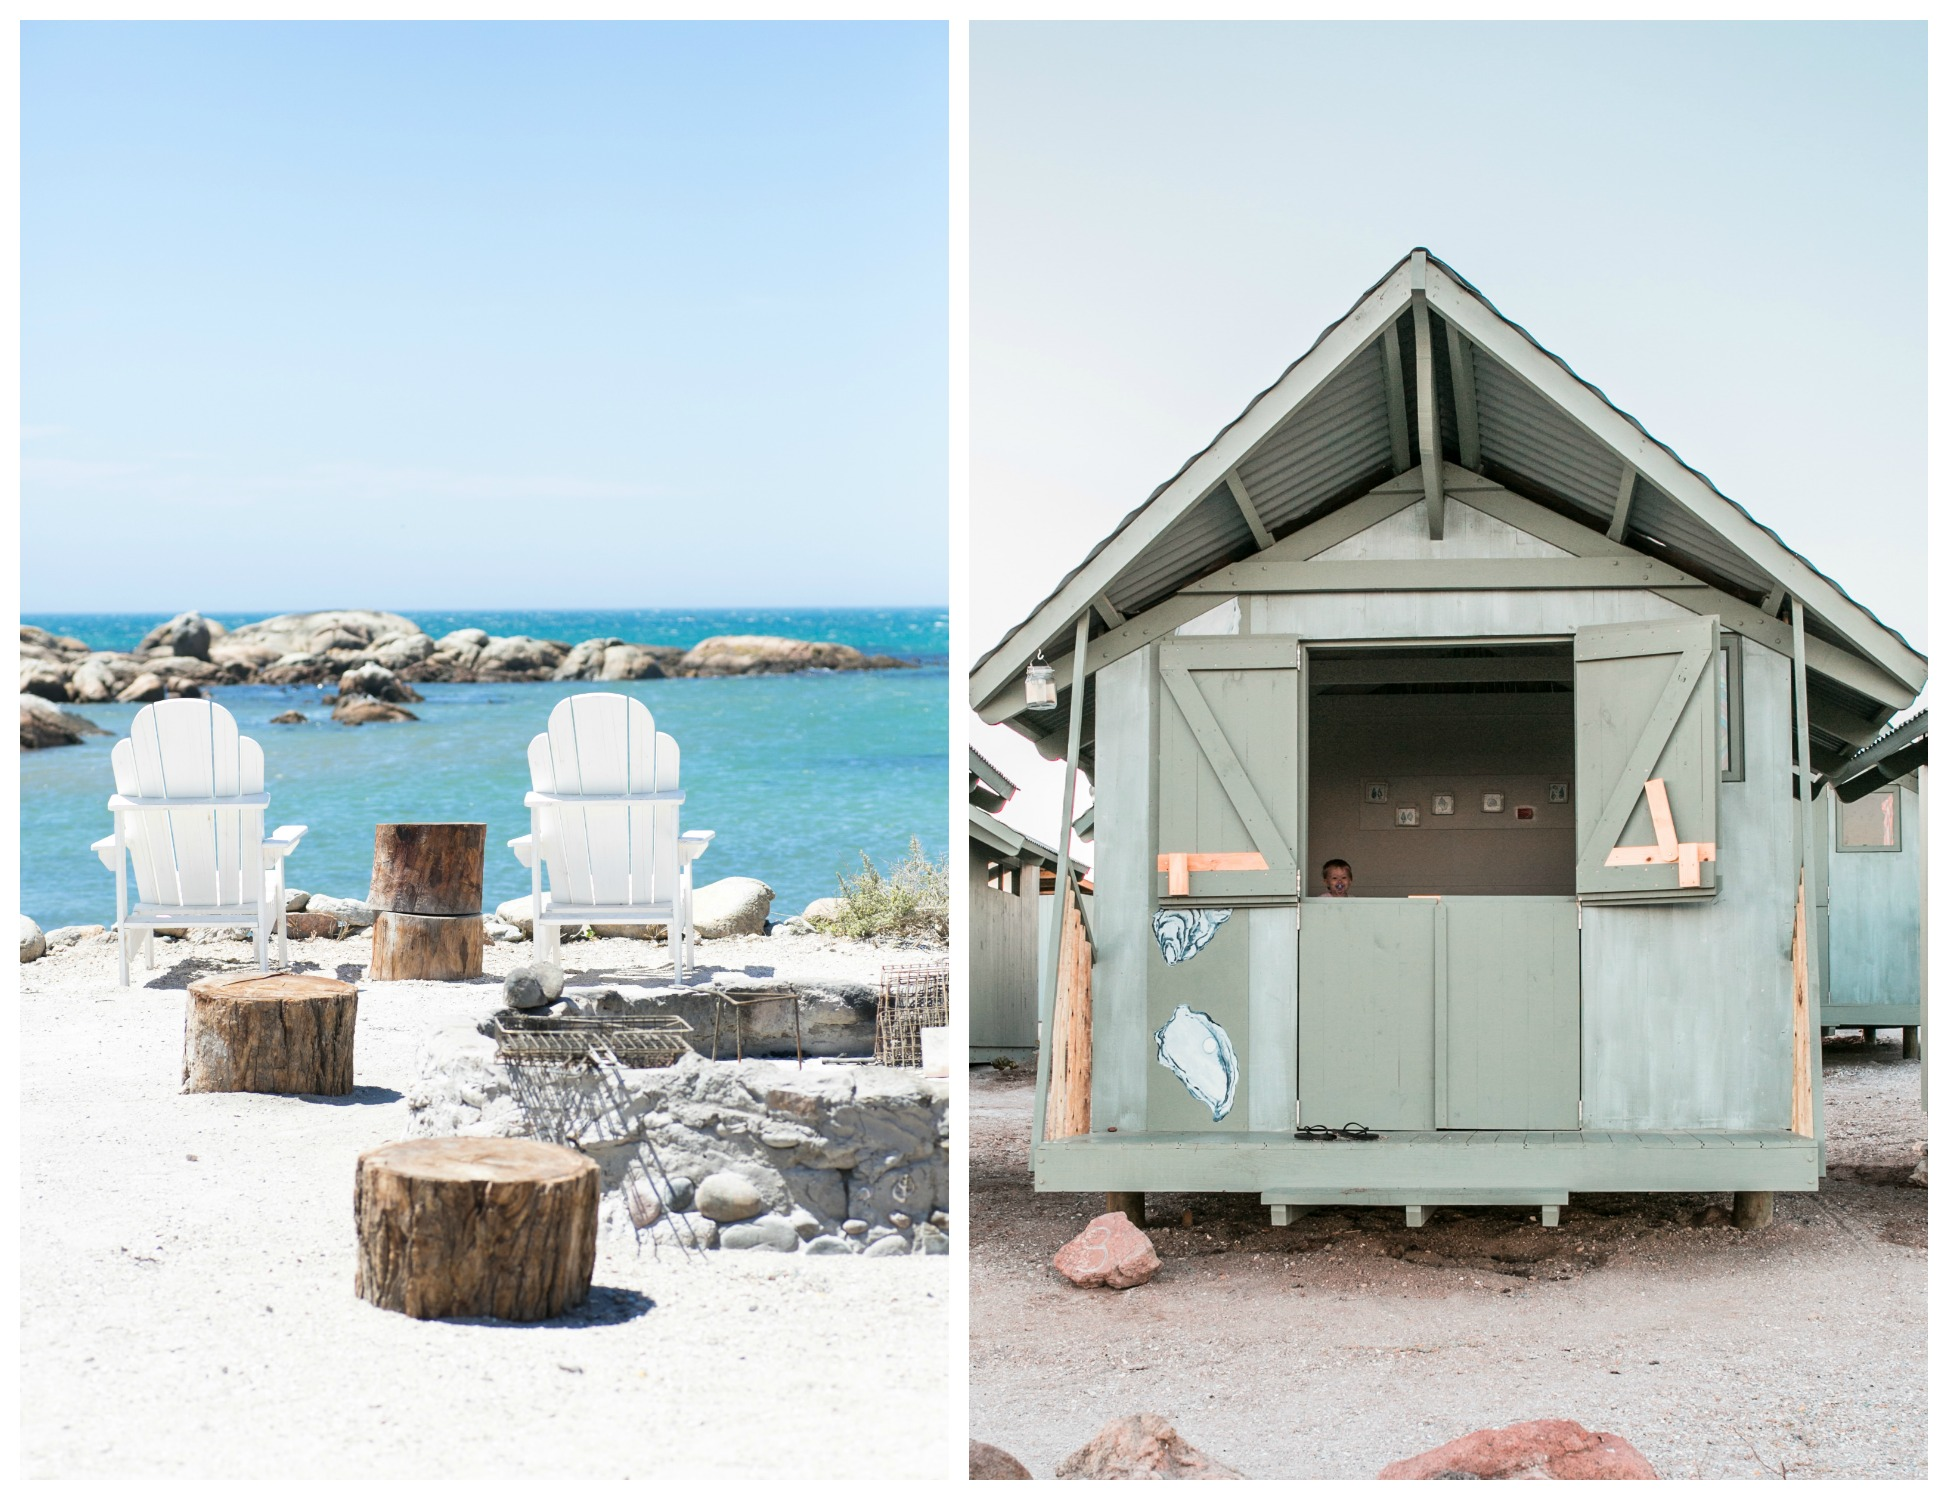 By The Sea || The Luminous Kitchen